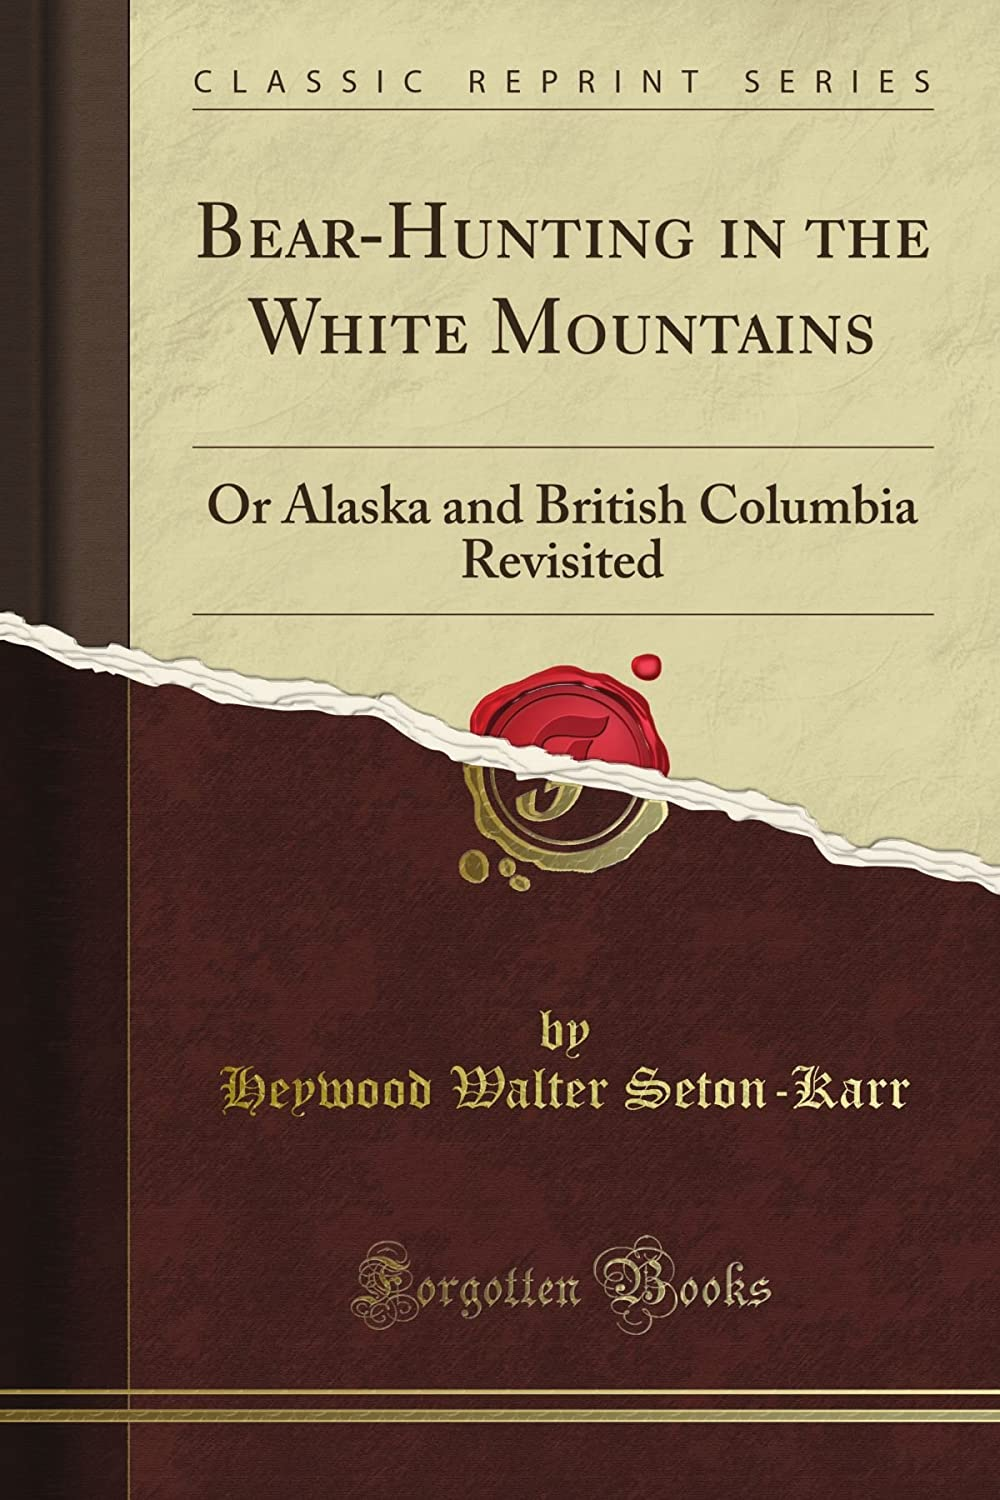 Bear-Hunting in the White Mountains: Or Alaska and British Columbia Revisited (Classic Reprint)